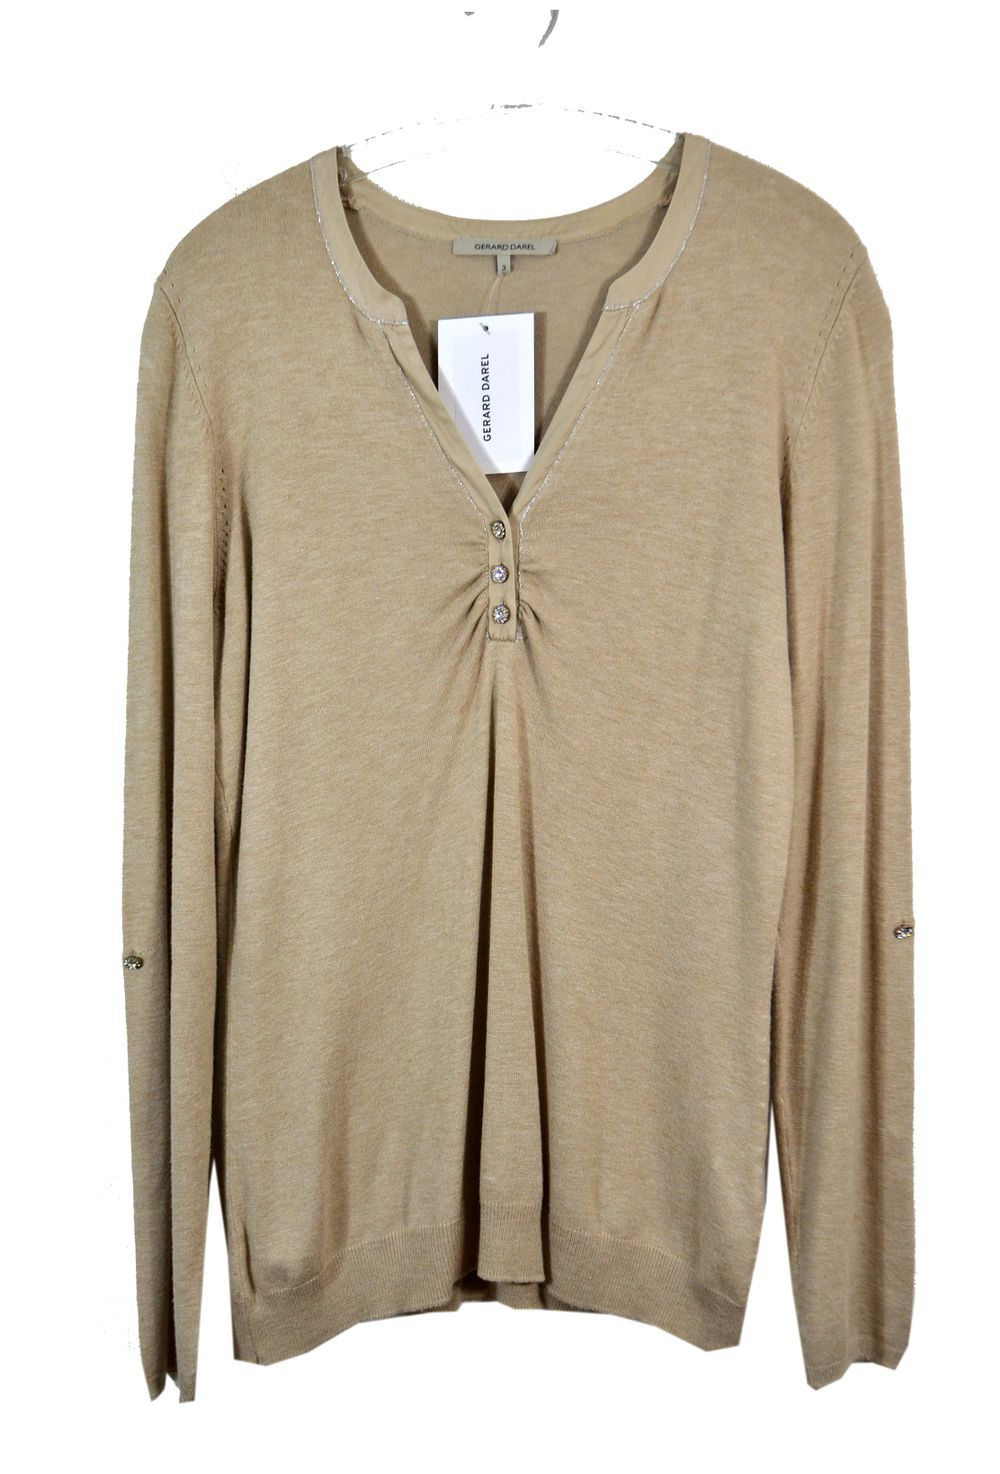 ♥ GERARD DAREL ♥ PULL BEIGE MANCHES RETROUSSABLES T. 40 via LES COCOTTES. Click on the image to see more!